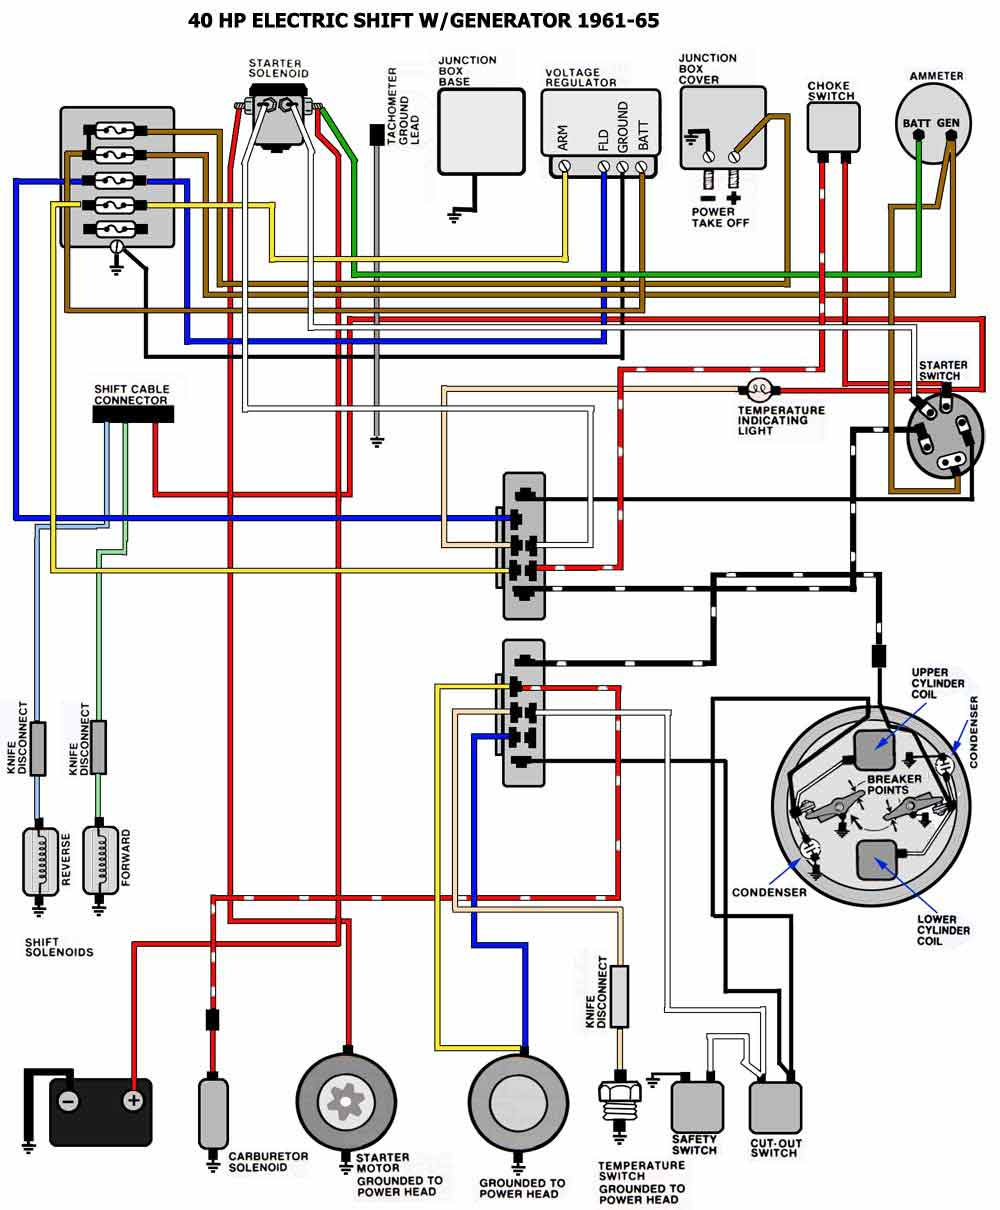 omc safety switch wiring diagram evinrude johnson outboard wiring diagrams -- mastertech marine nuetral safety switch wiring diagram